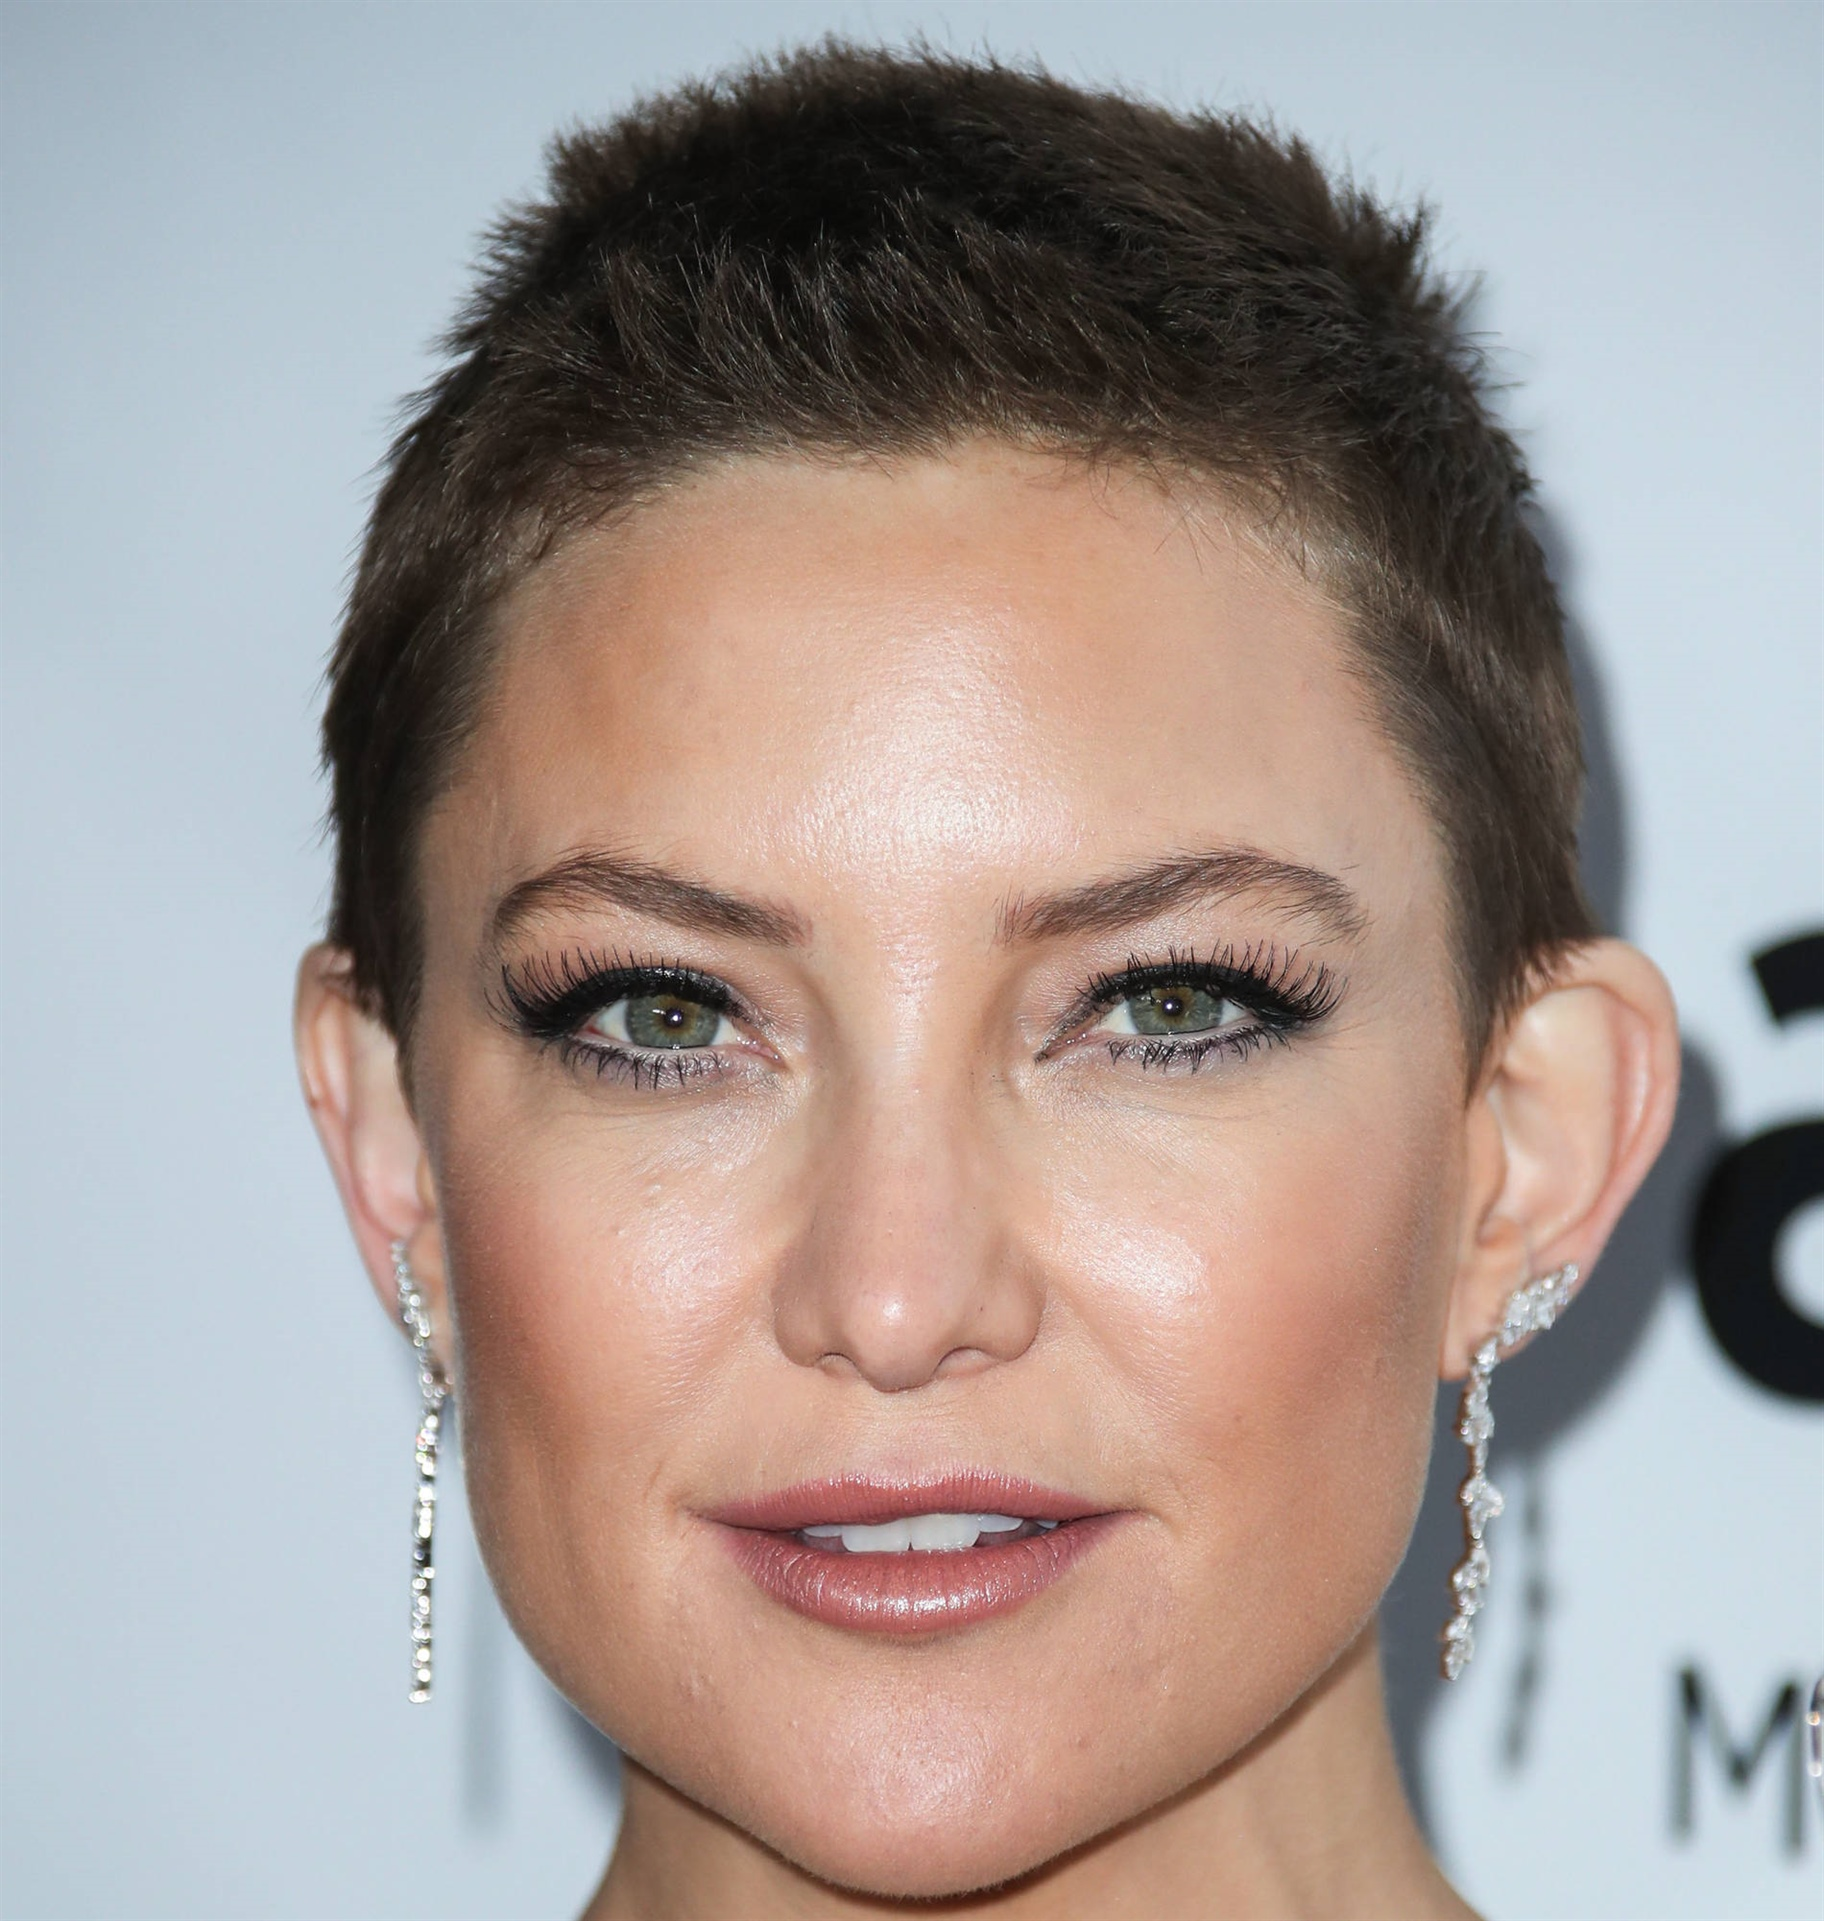 Short Hair Trends Kate Hudson  Simple and short as Kate Hudson The ultra-short look does not require much when it comes to styling and care - the only thing you need to think about to maintain the hairstyle is to visit the hairdresser at least every 4-6. week.